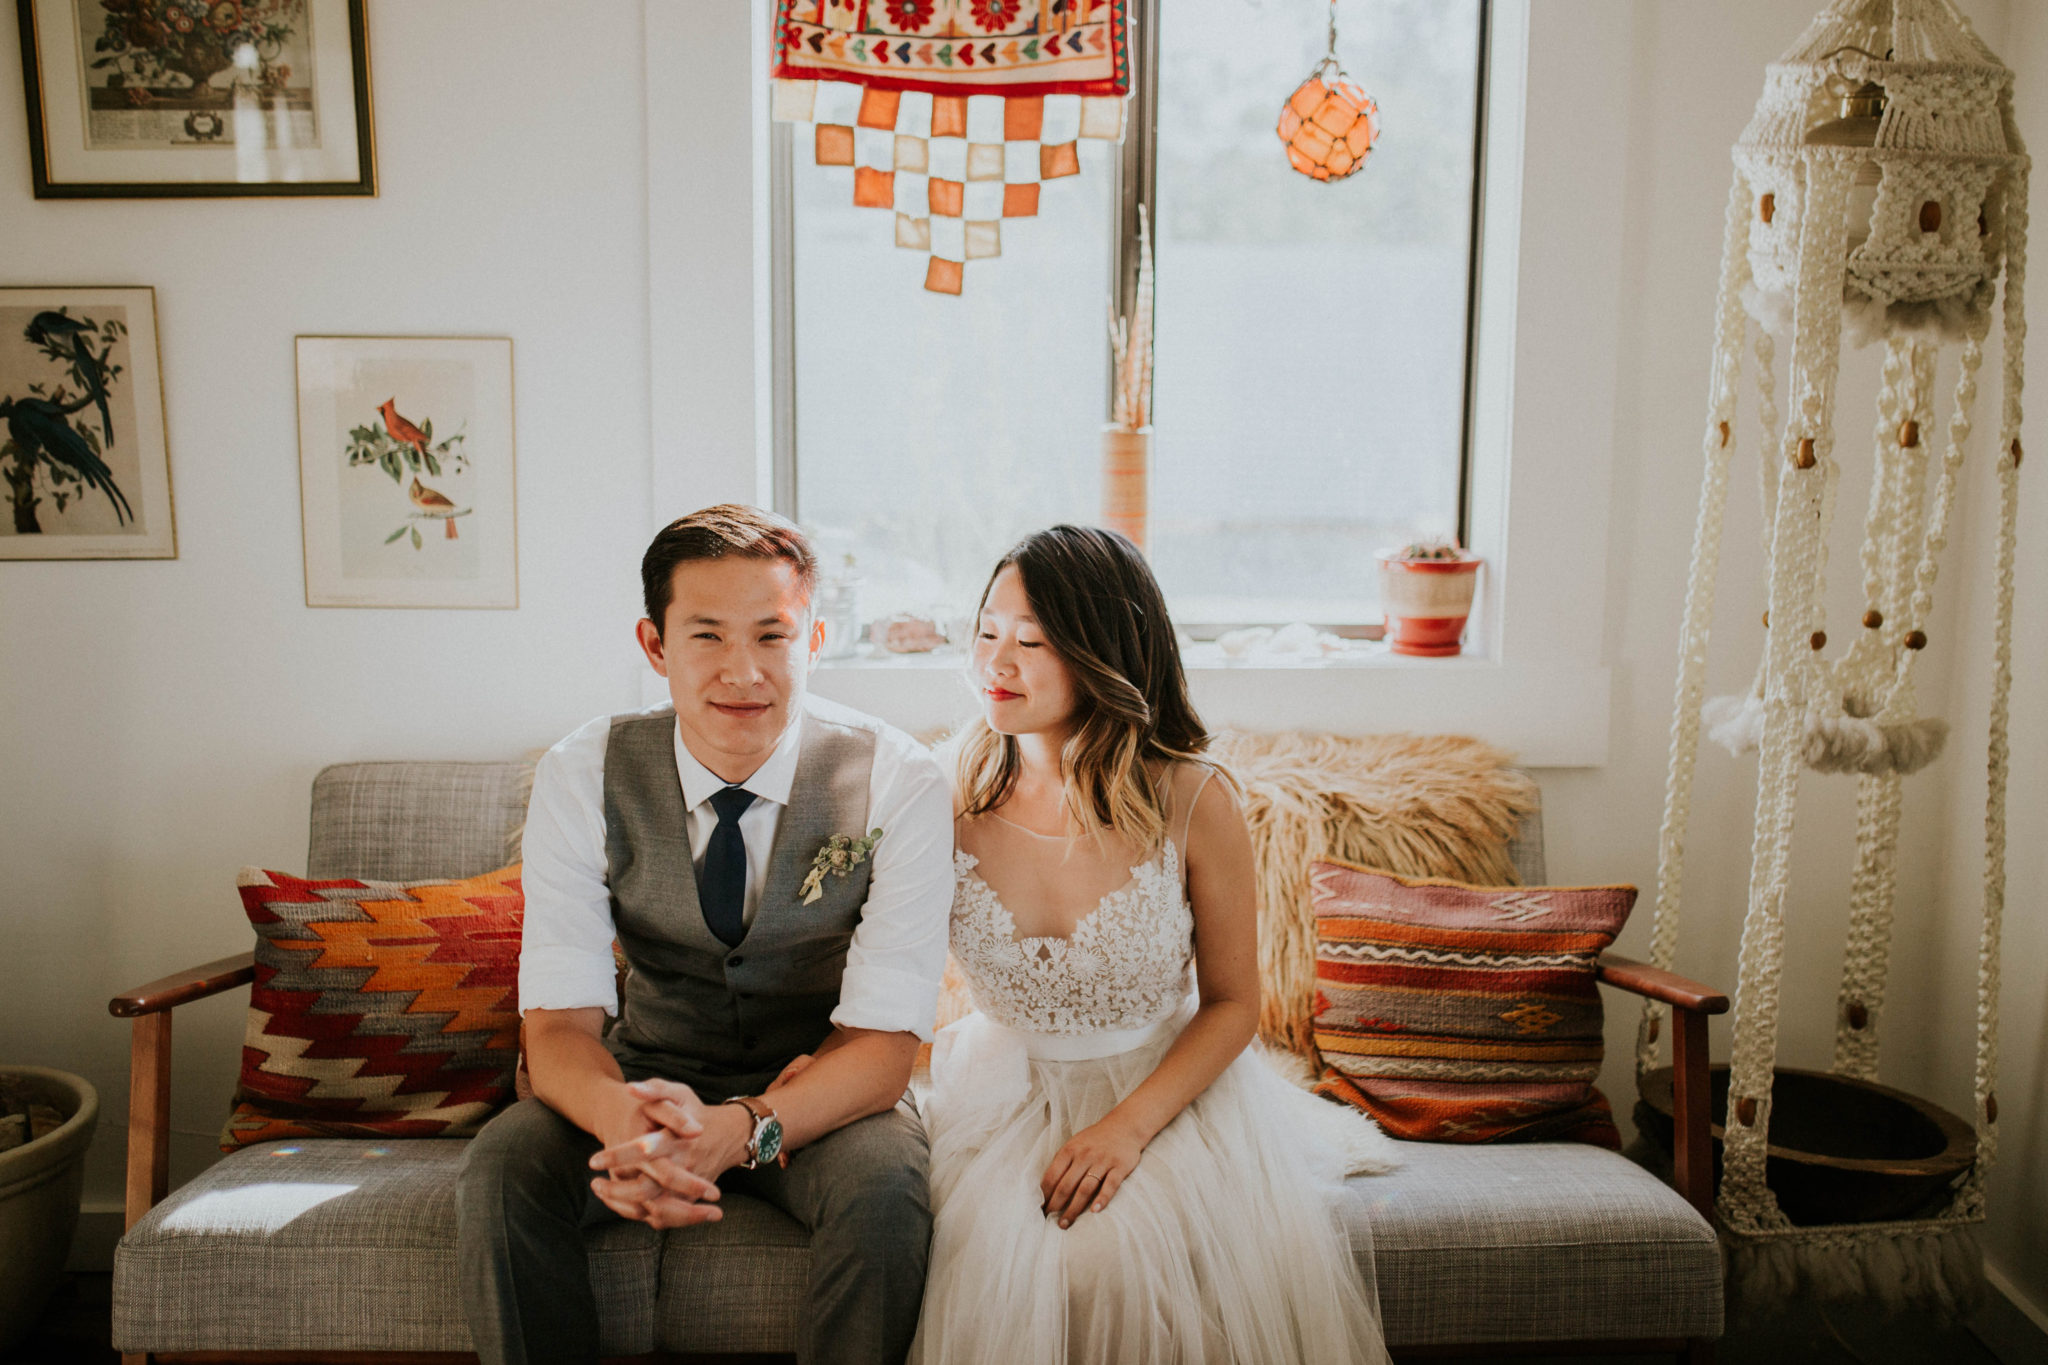 Mandy & Joey Joshua Tree Elopement California Wedding Photographer-2